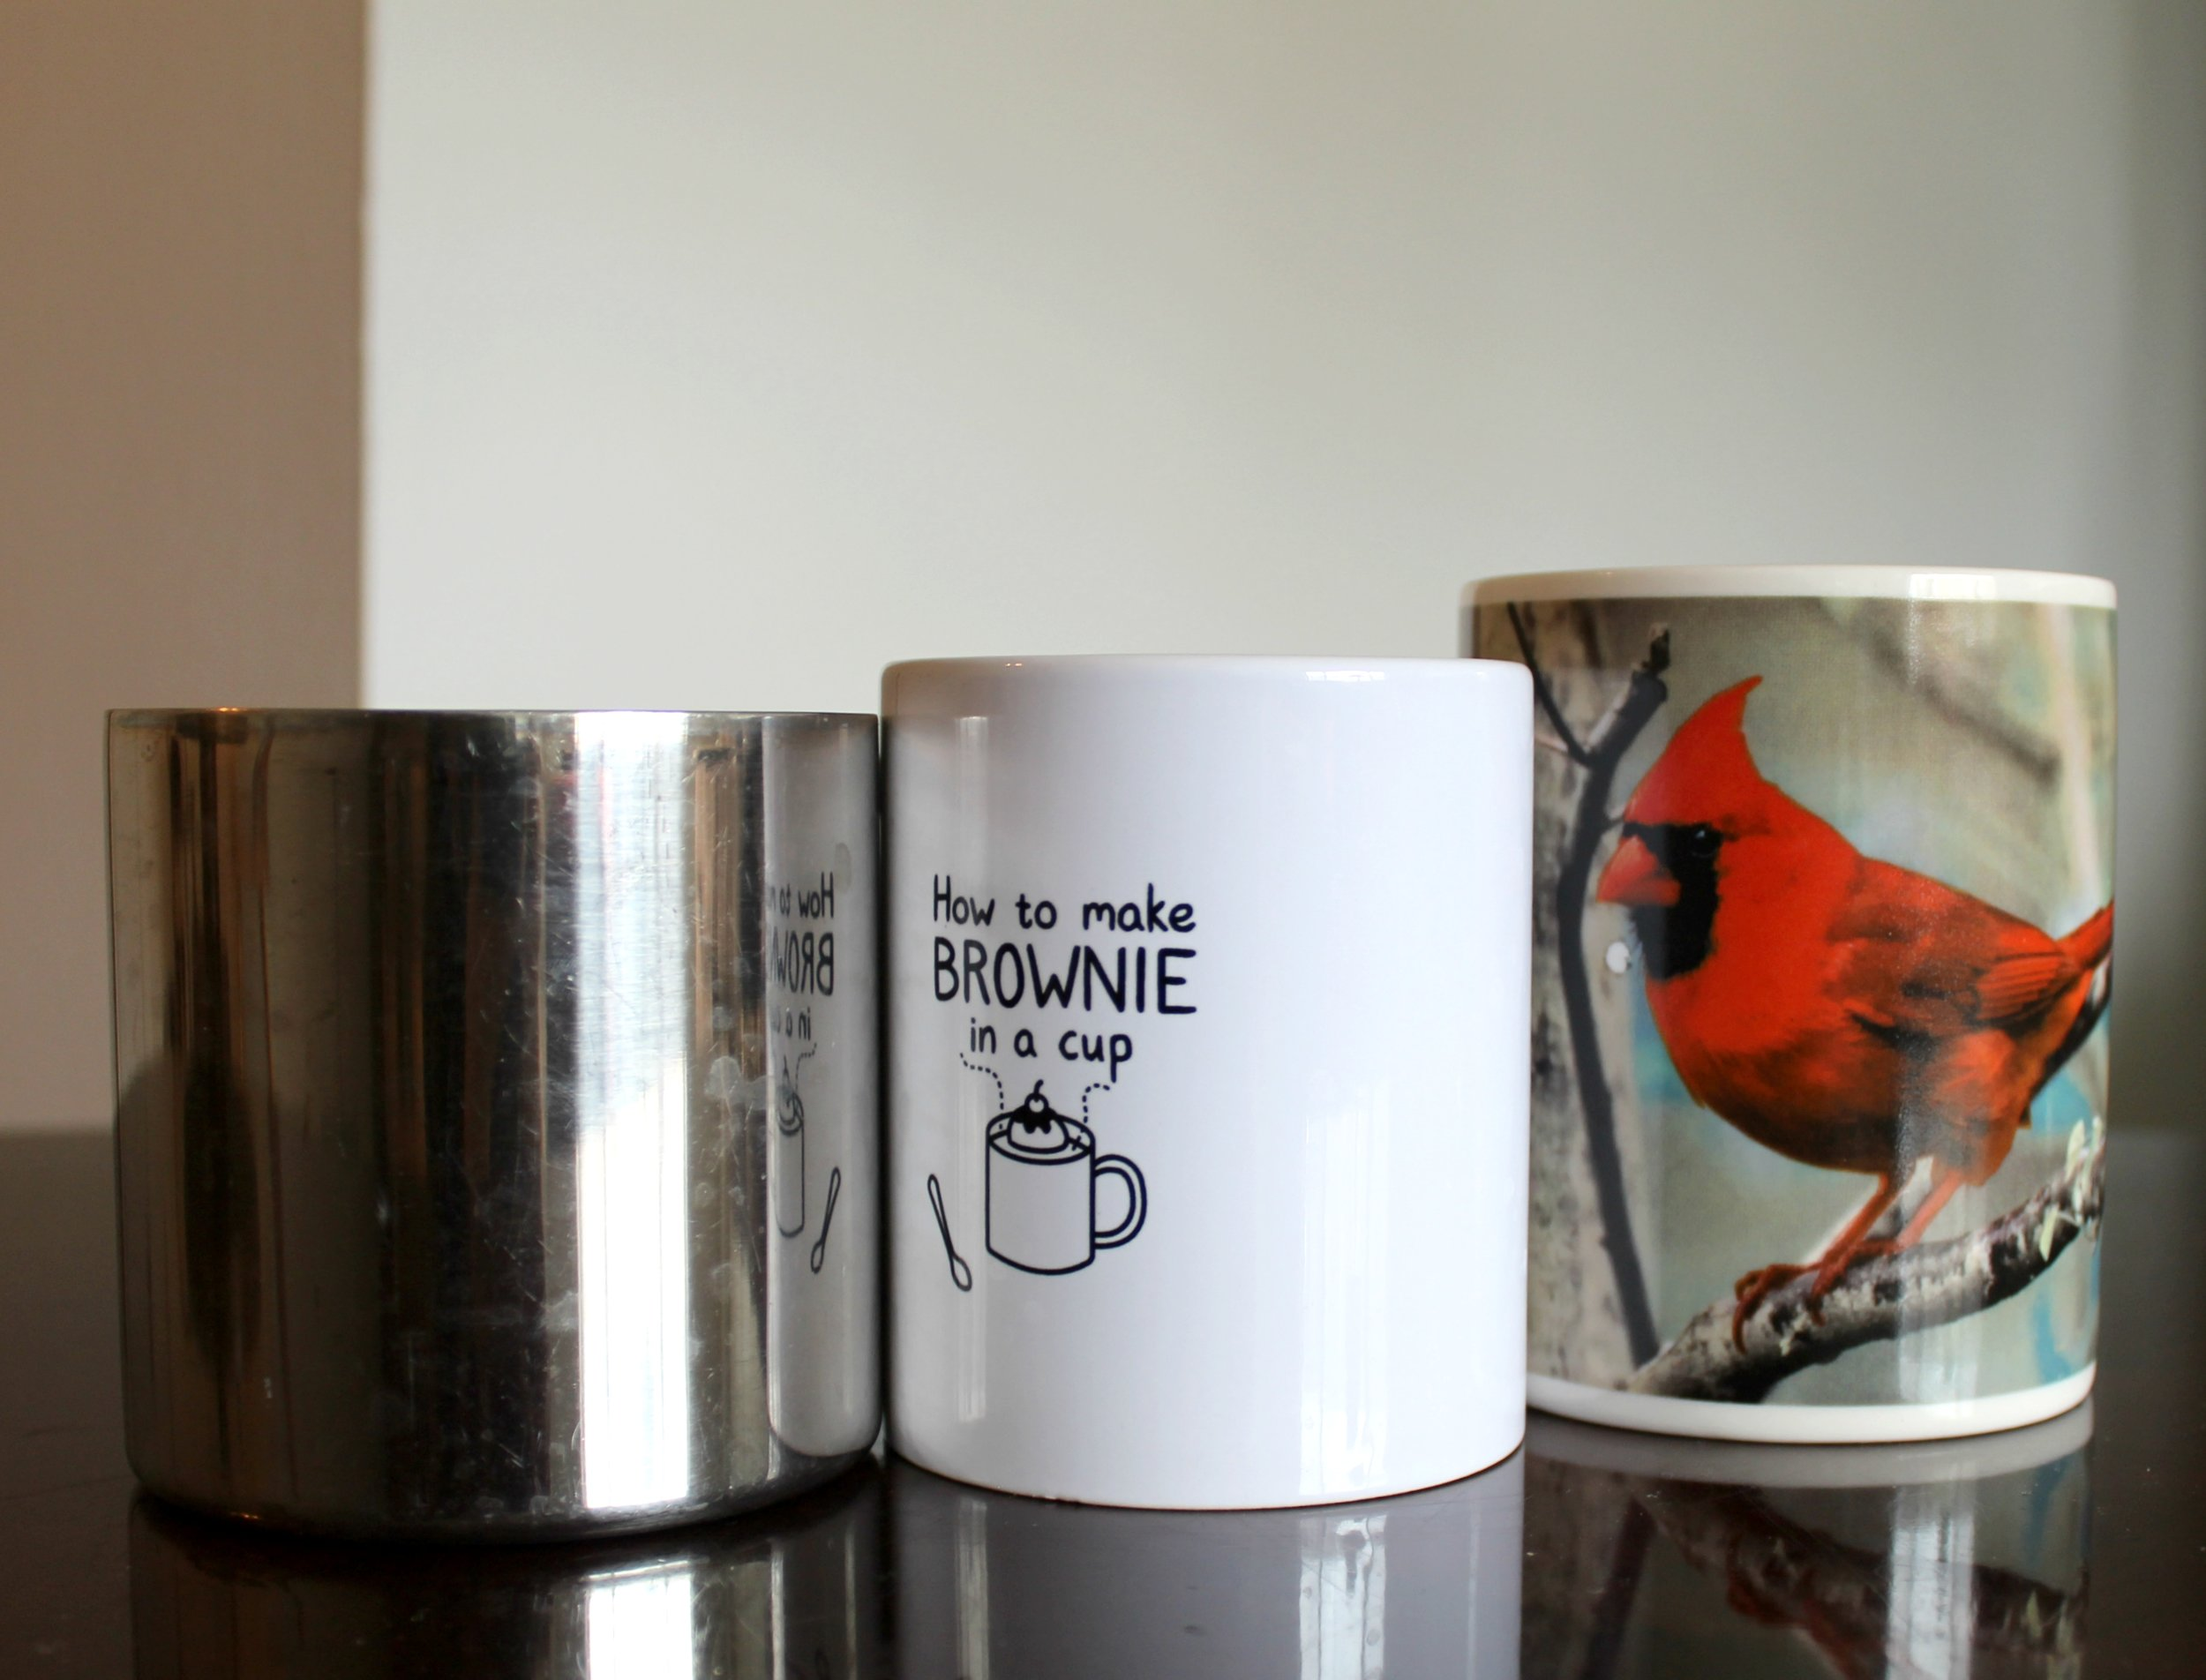 These simple decorations can be made with any mugs you have around the house!